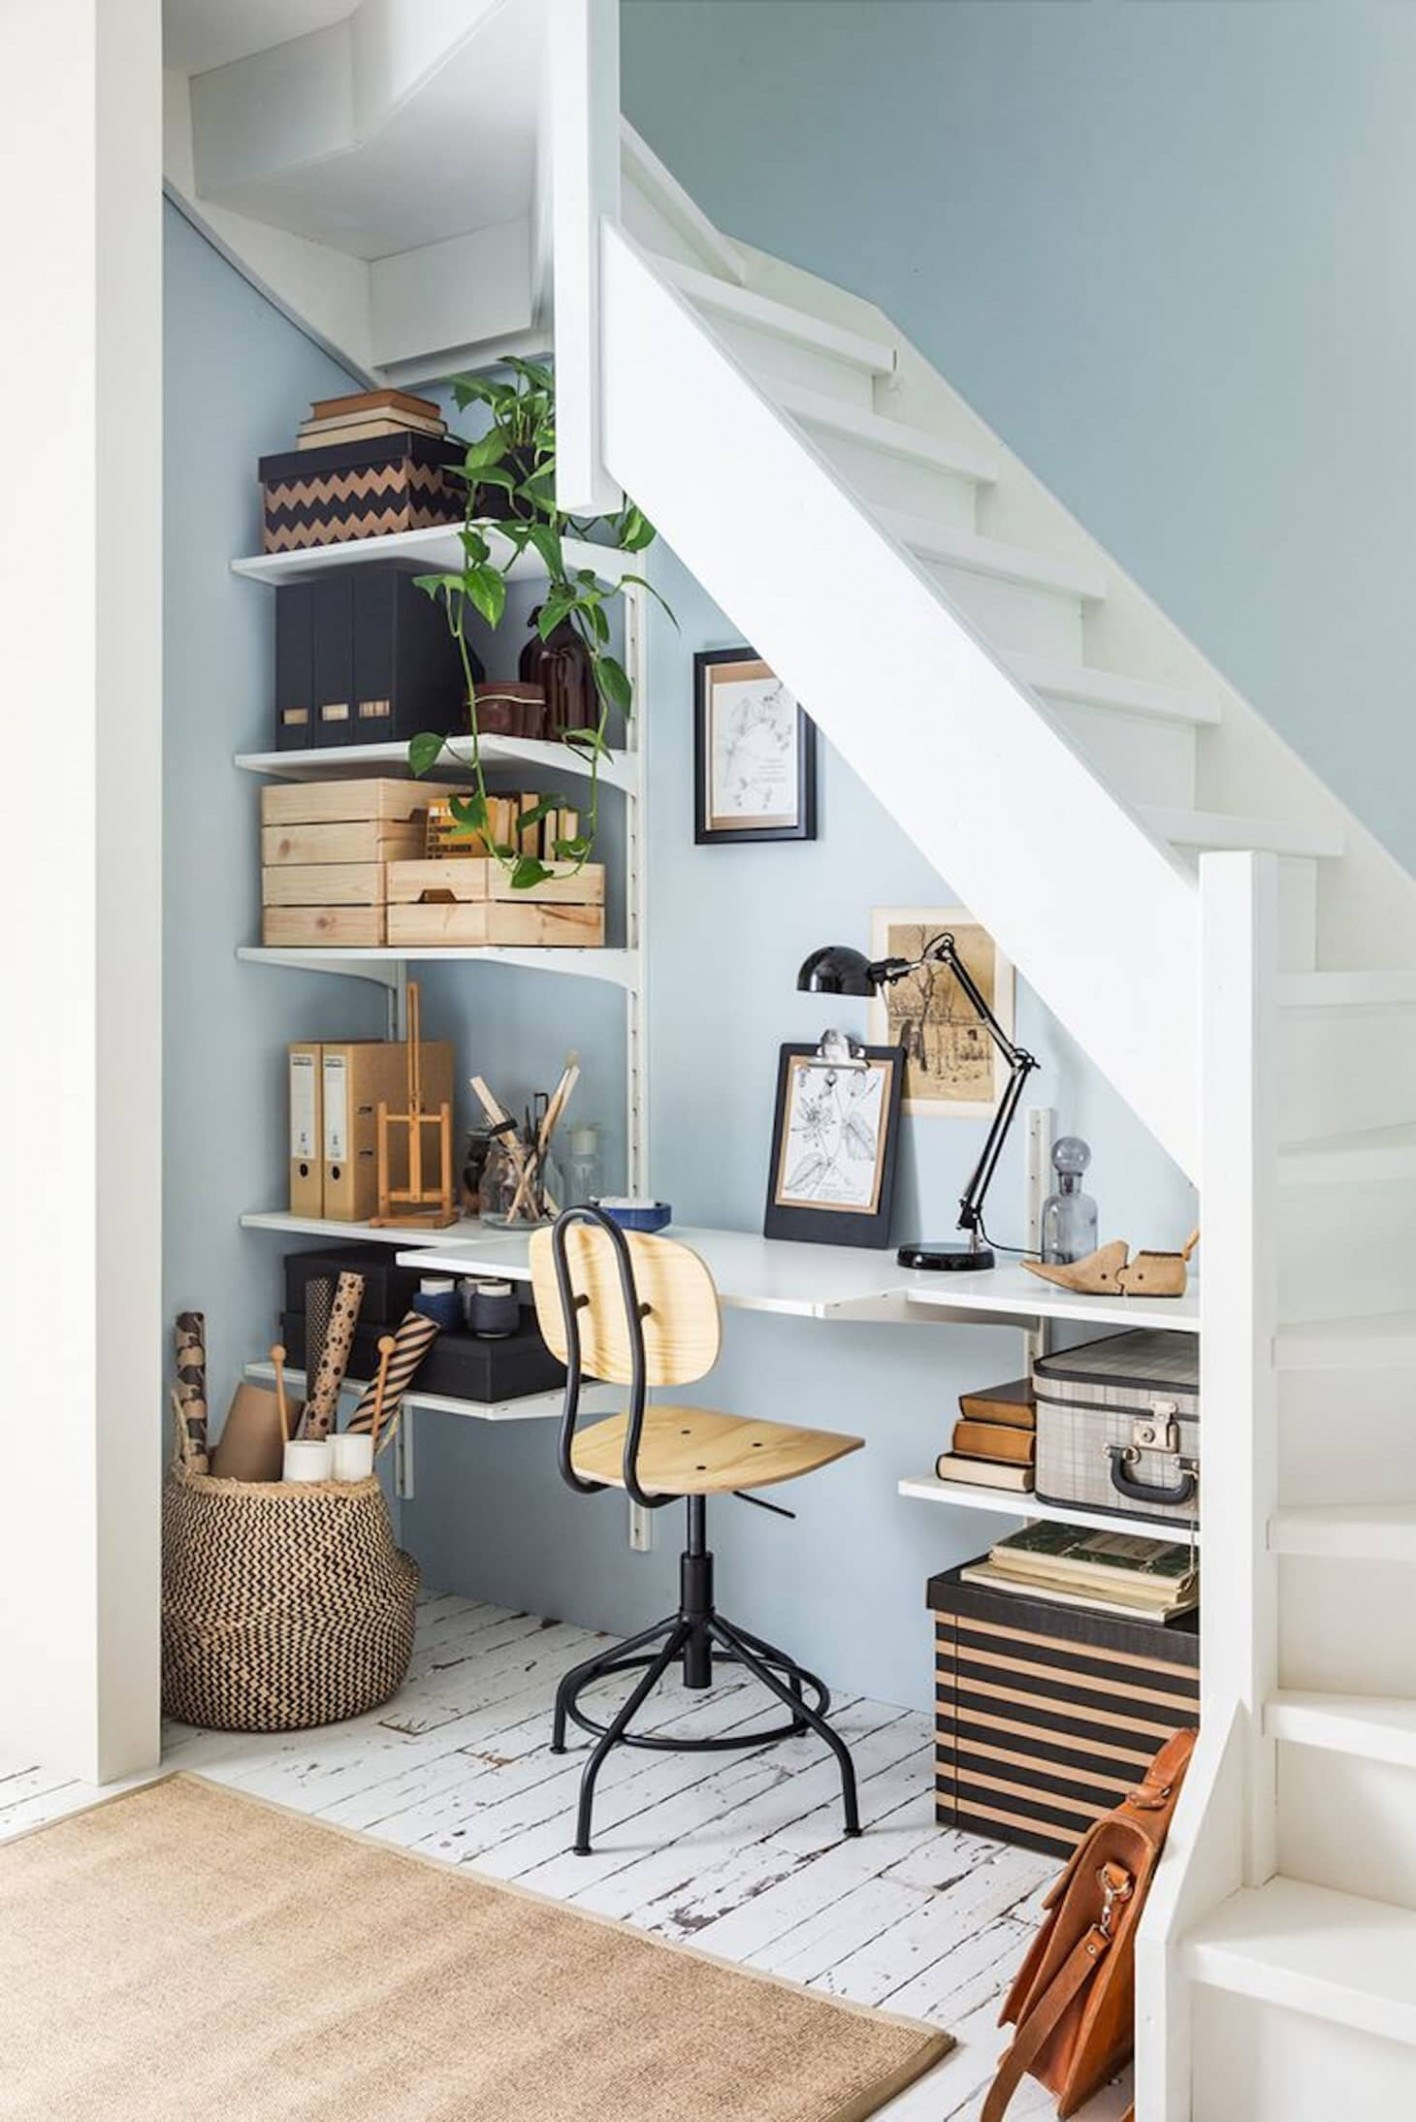 8+ Inspiring Small Home Office Ideas — THE NORDROOM - Narrow Home Office Ideas